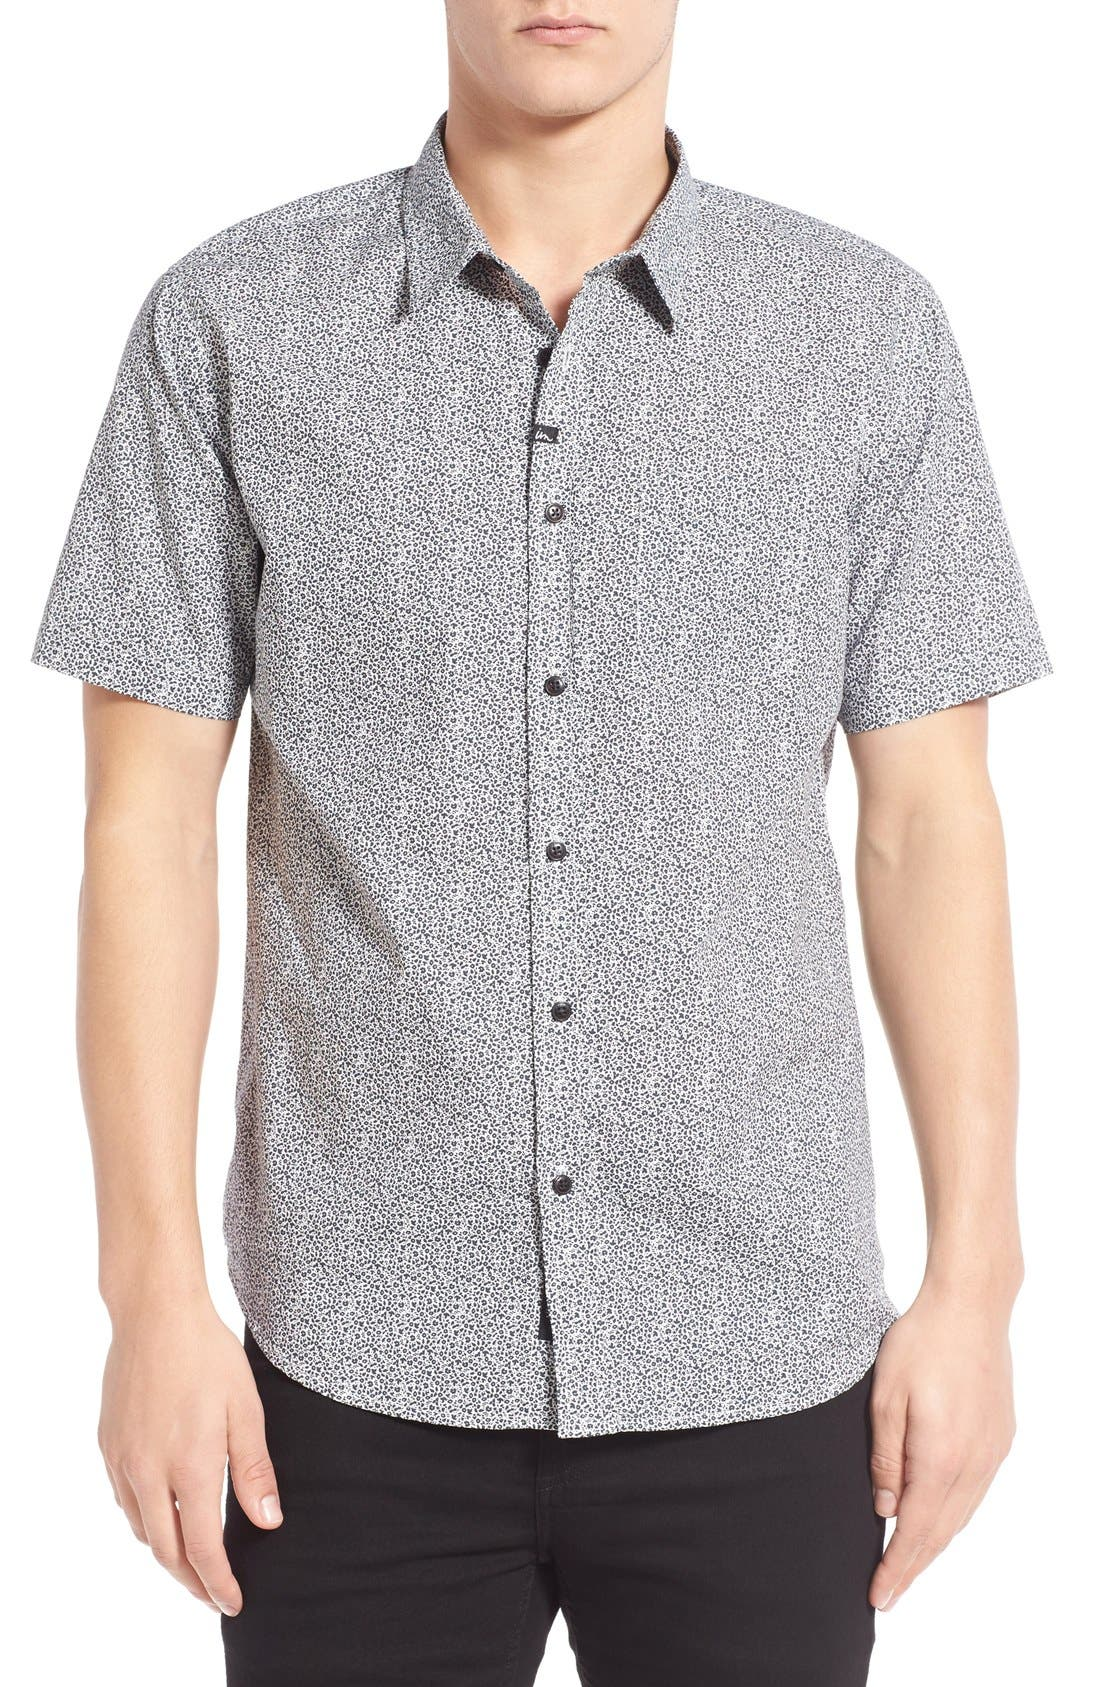 IMPERIAL MOTION Micro Print Short Sleeve Woven Shirt